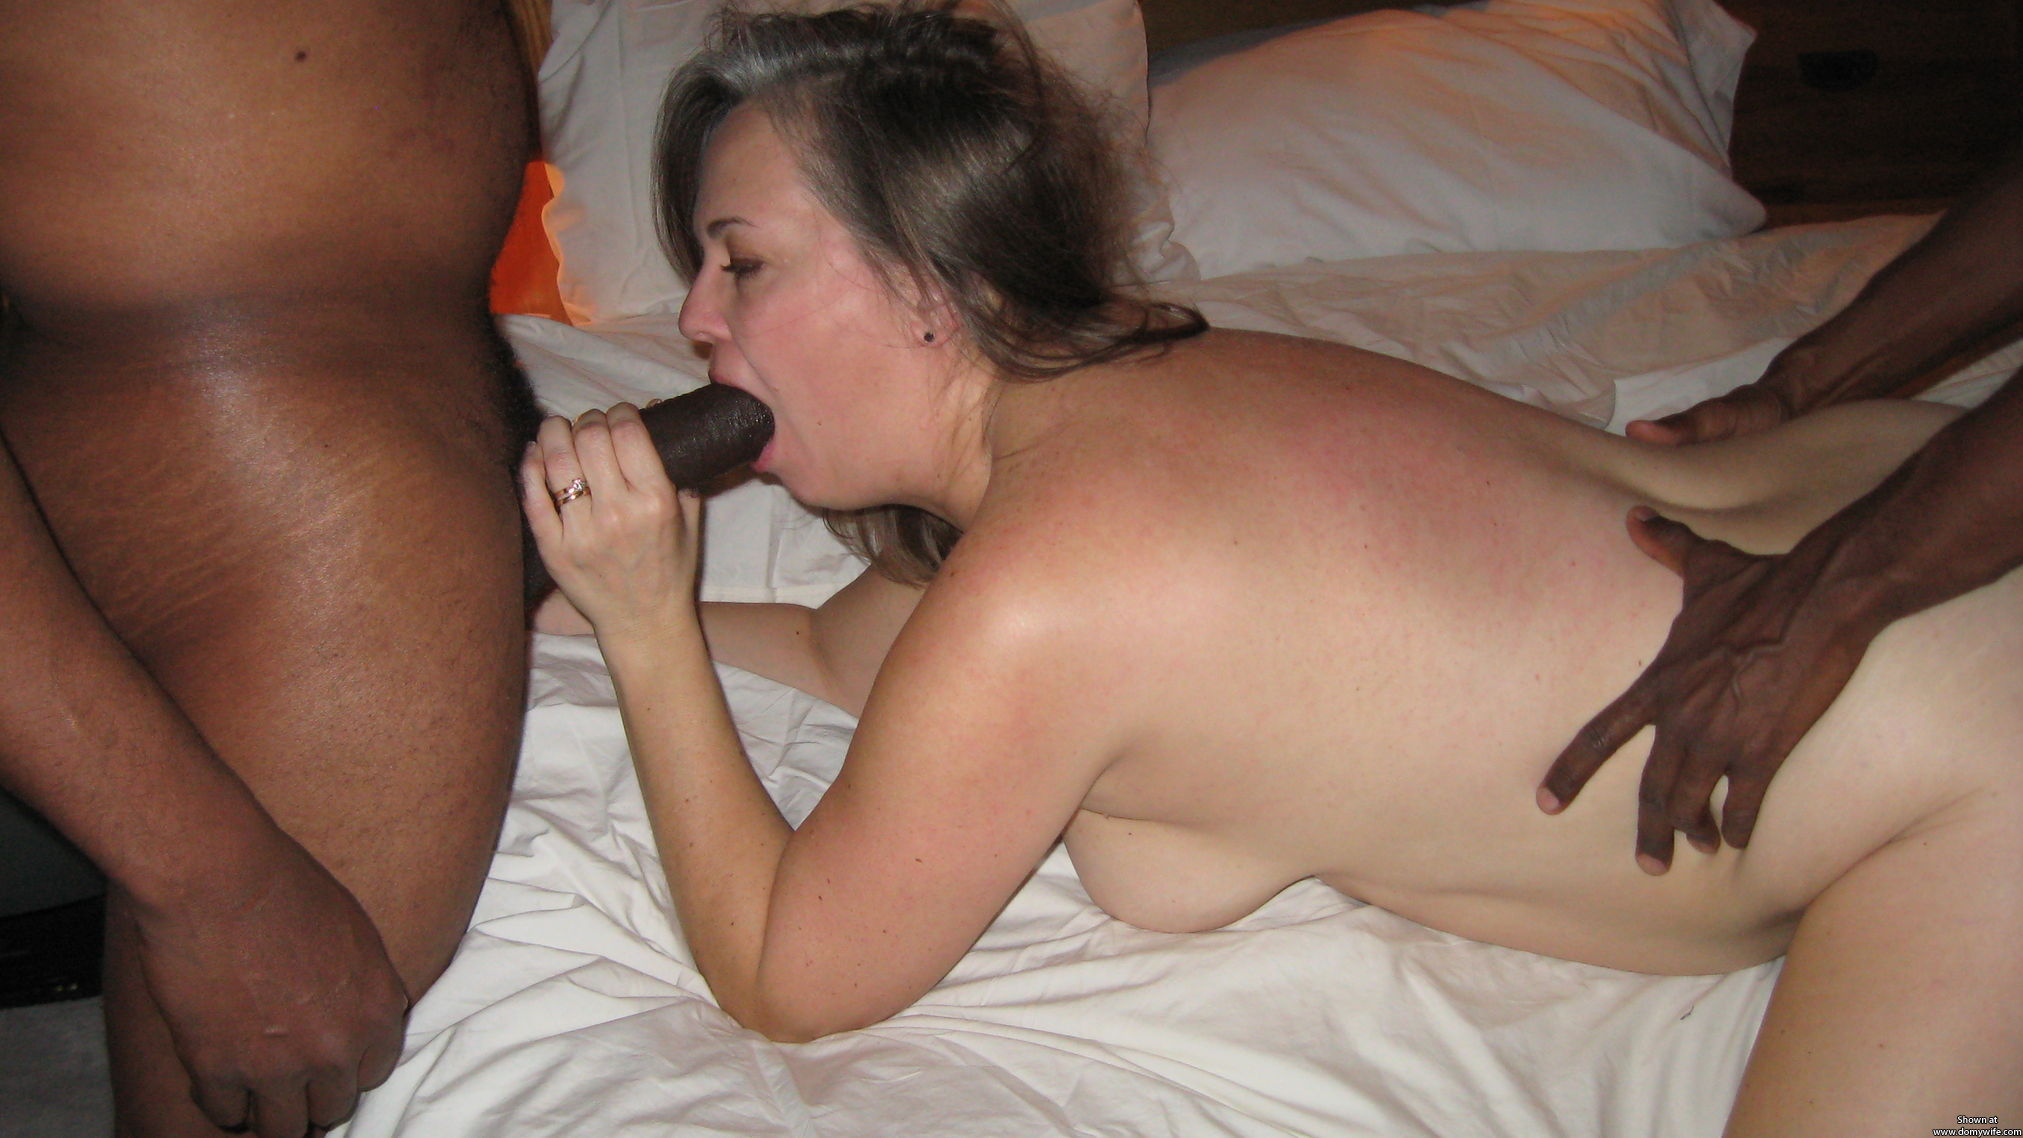 Cocks In Mouth